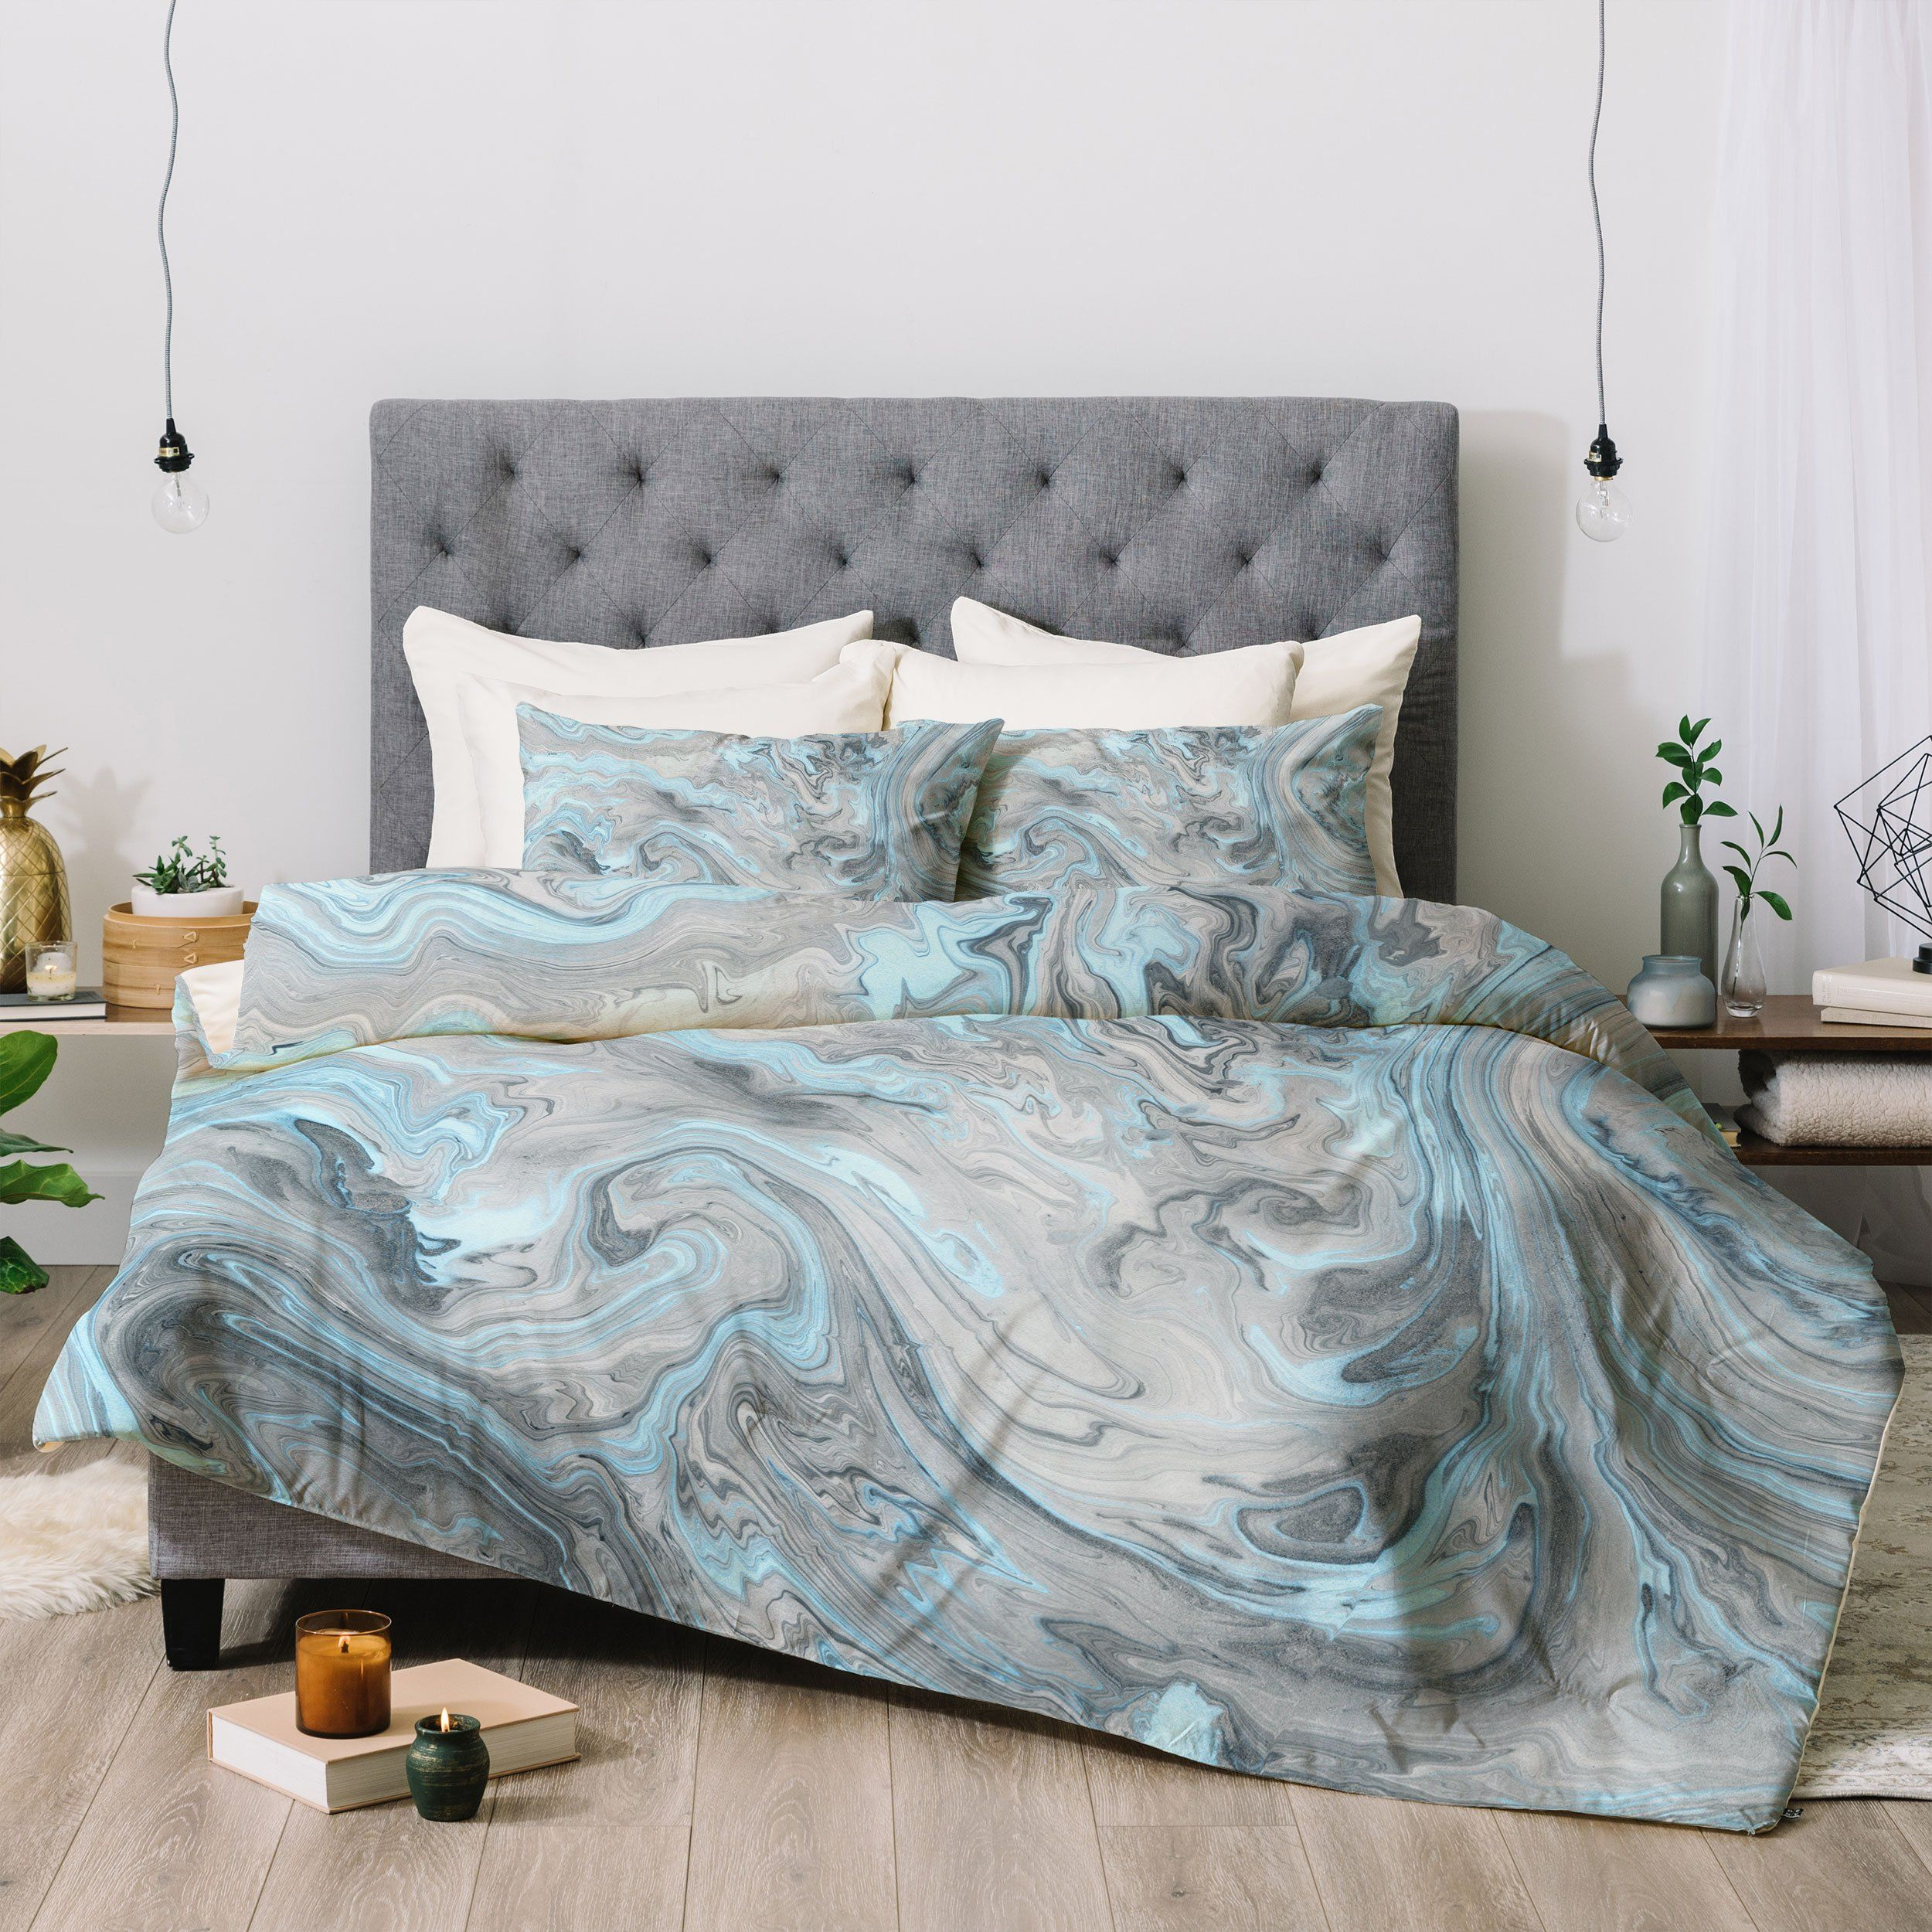 Ice Blue And Gray Marble Comforter Lisa Argyropoulos Luxury